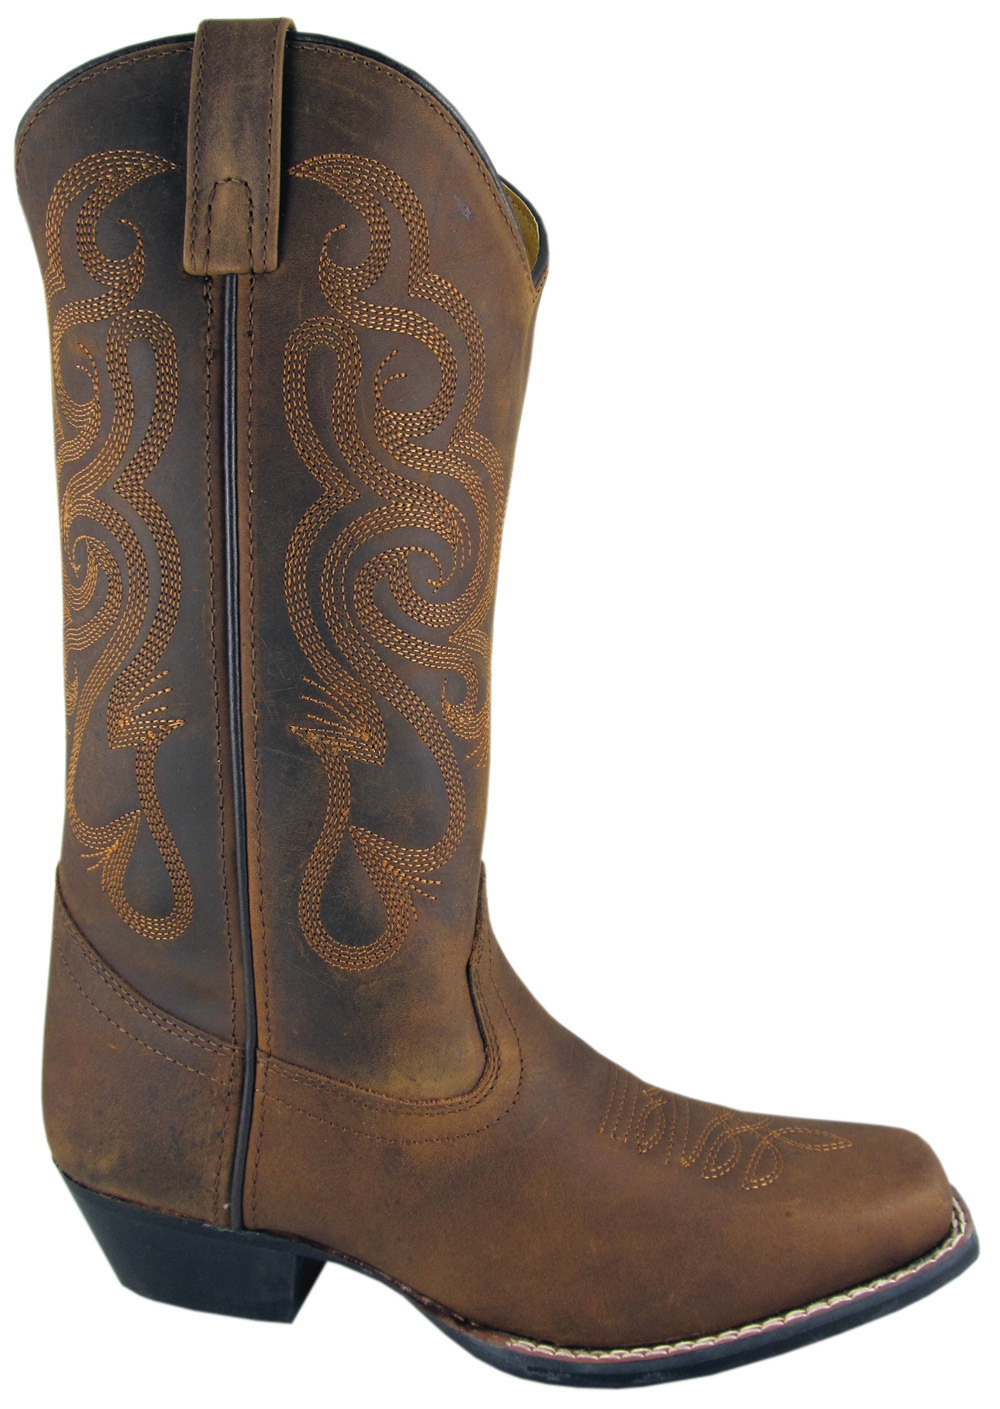 "Lariat"" Distressed leather womens cowboy boots"